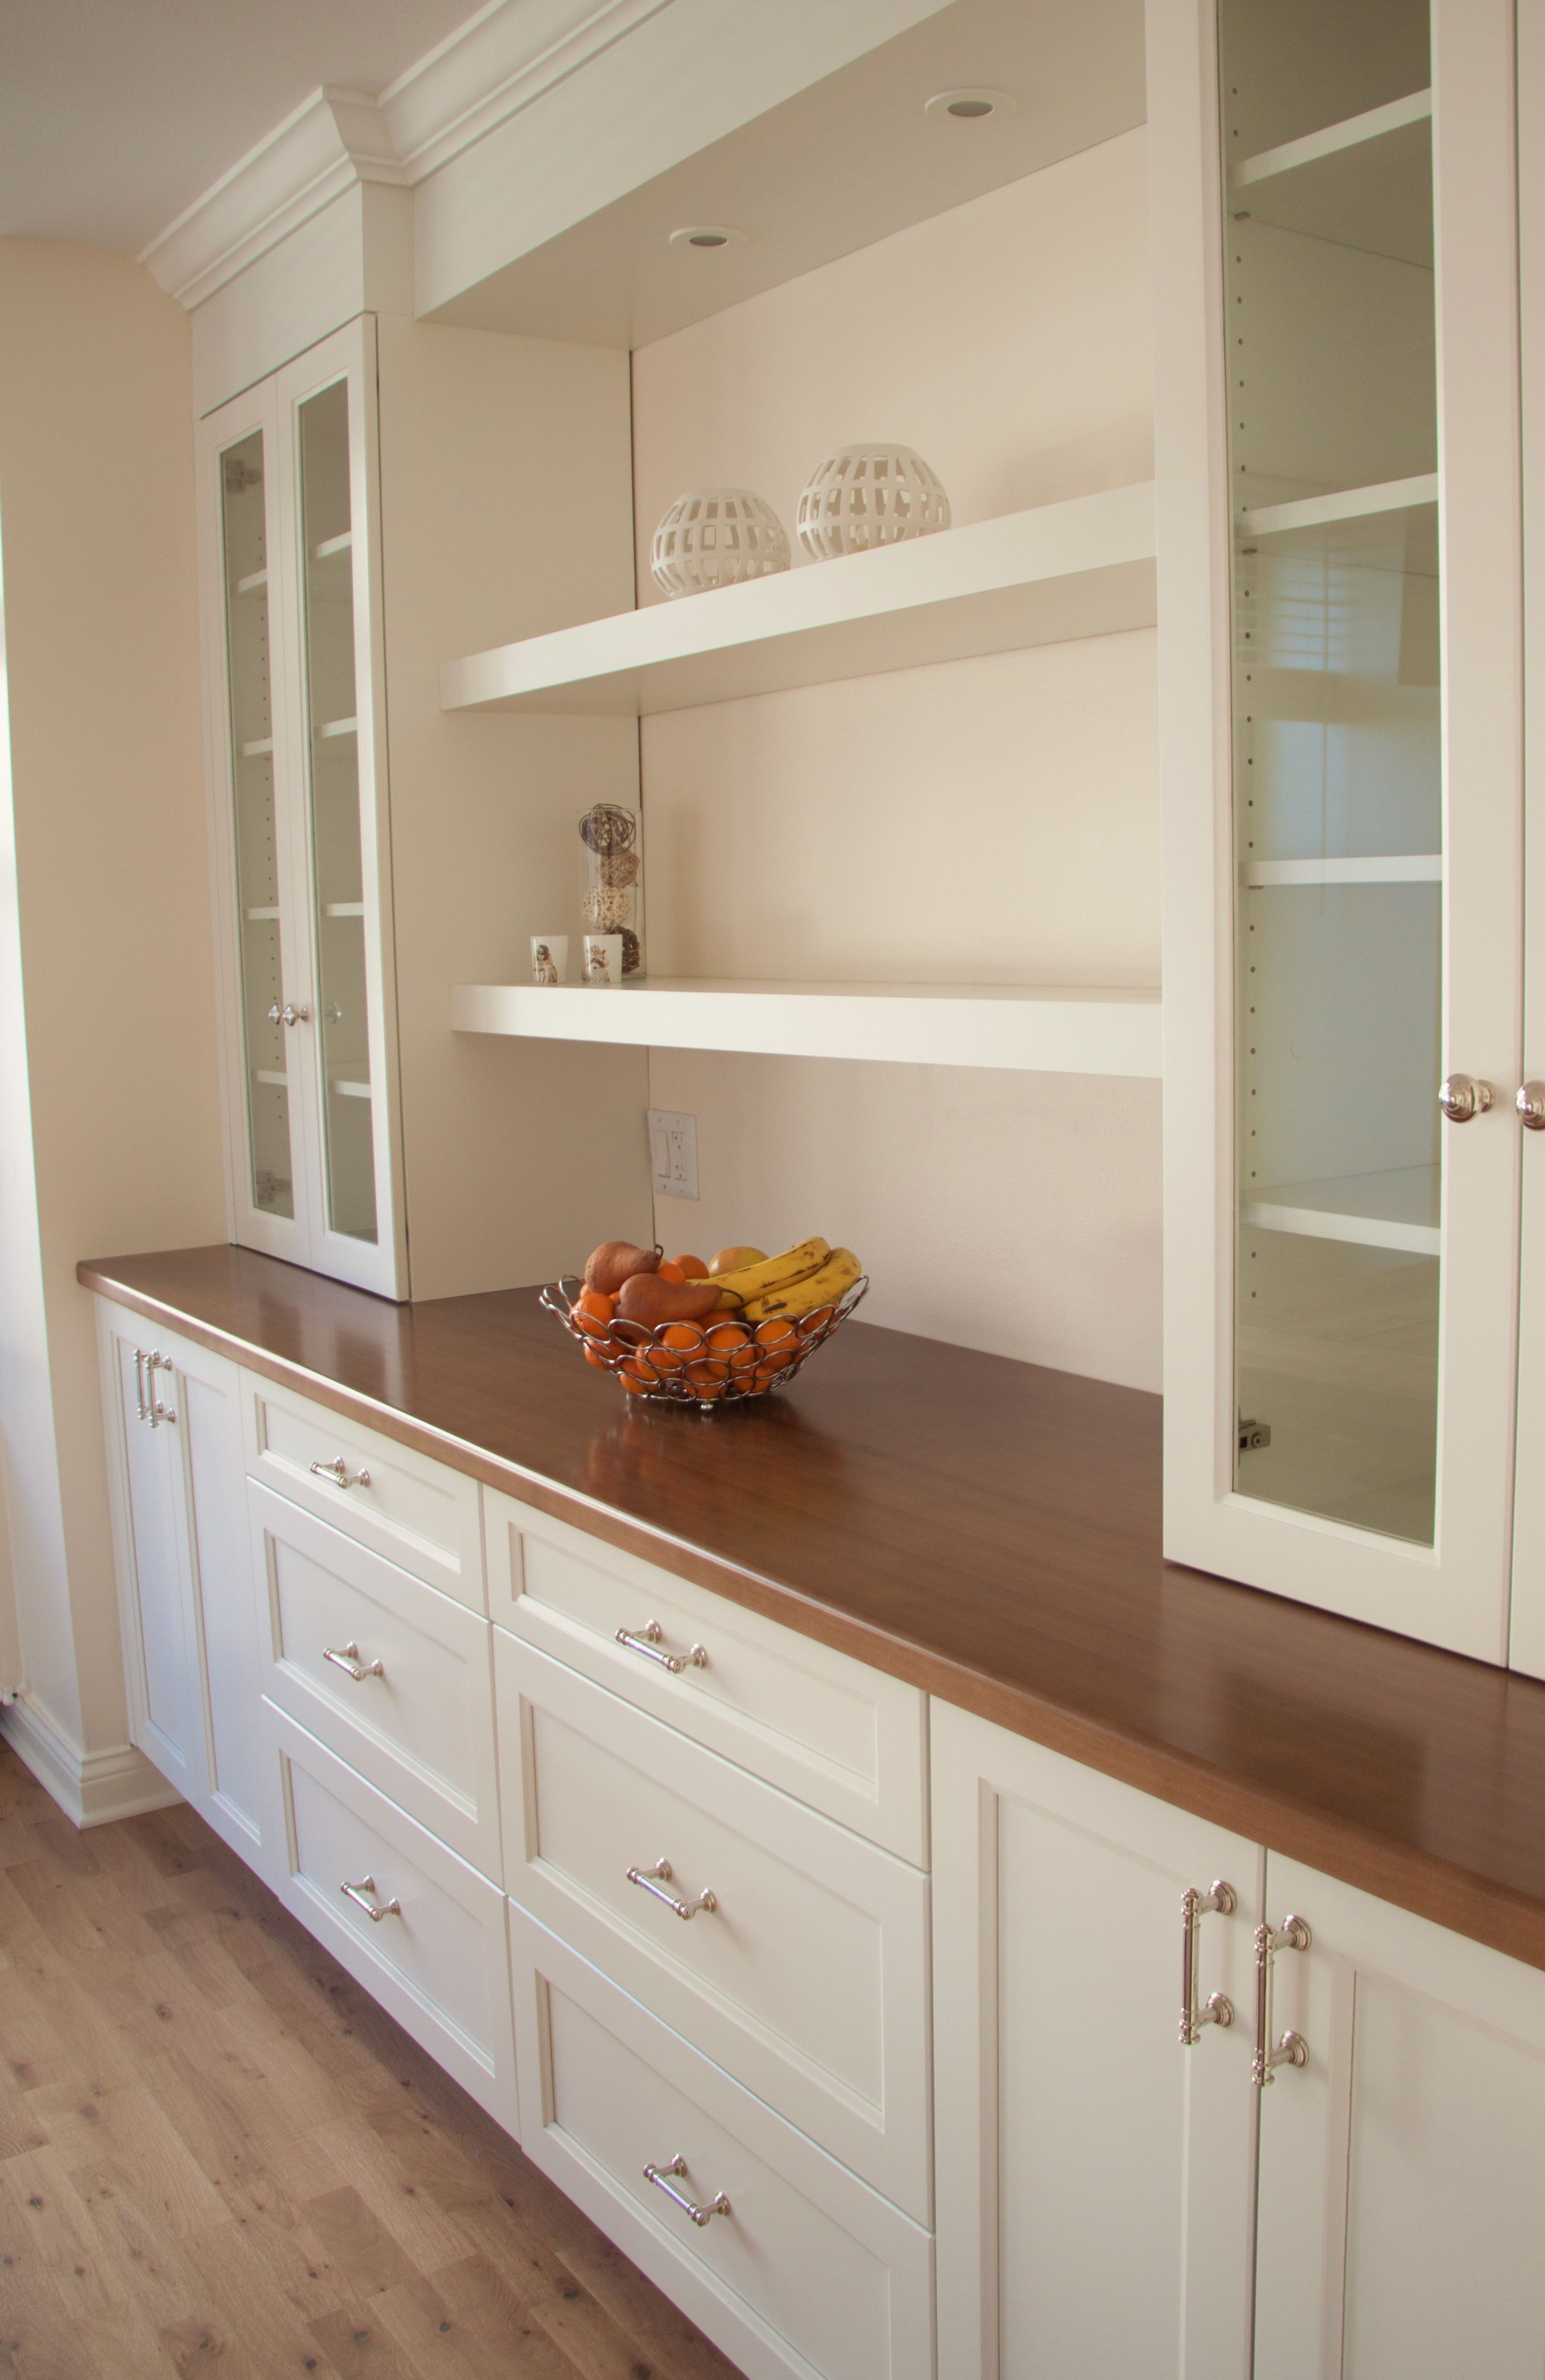 Replicate The General Idea But Smaller With Ikea Cabinets In 2020